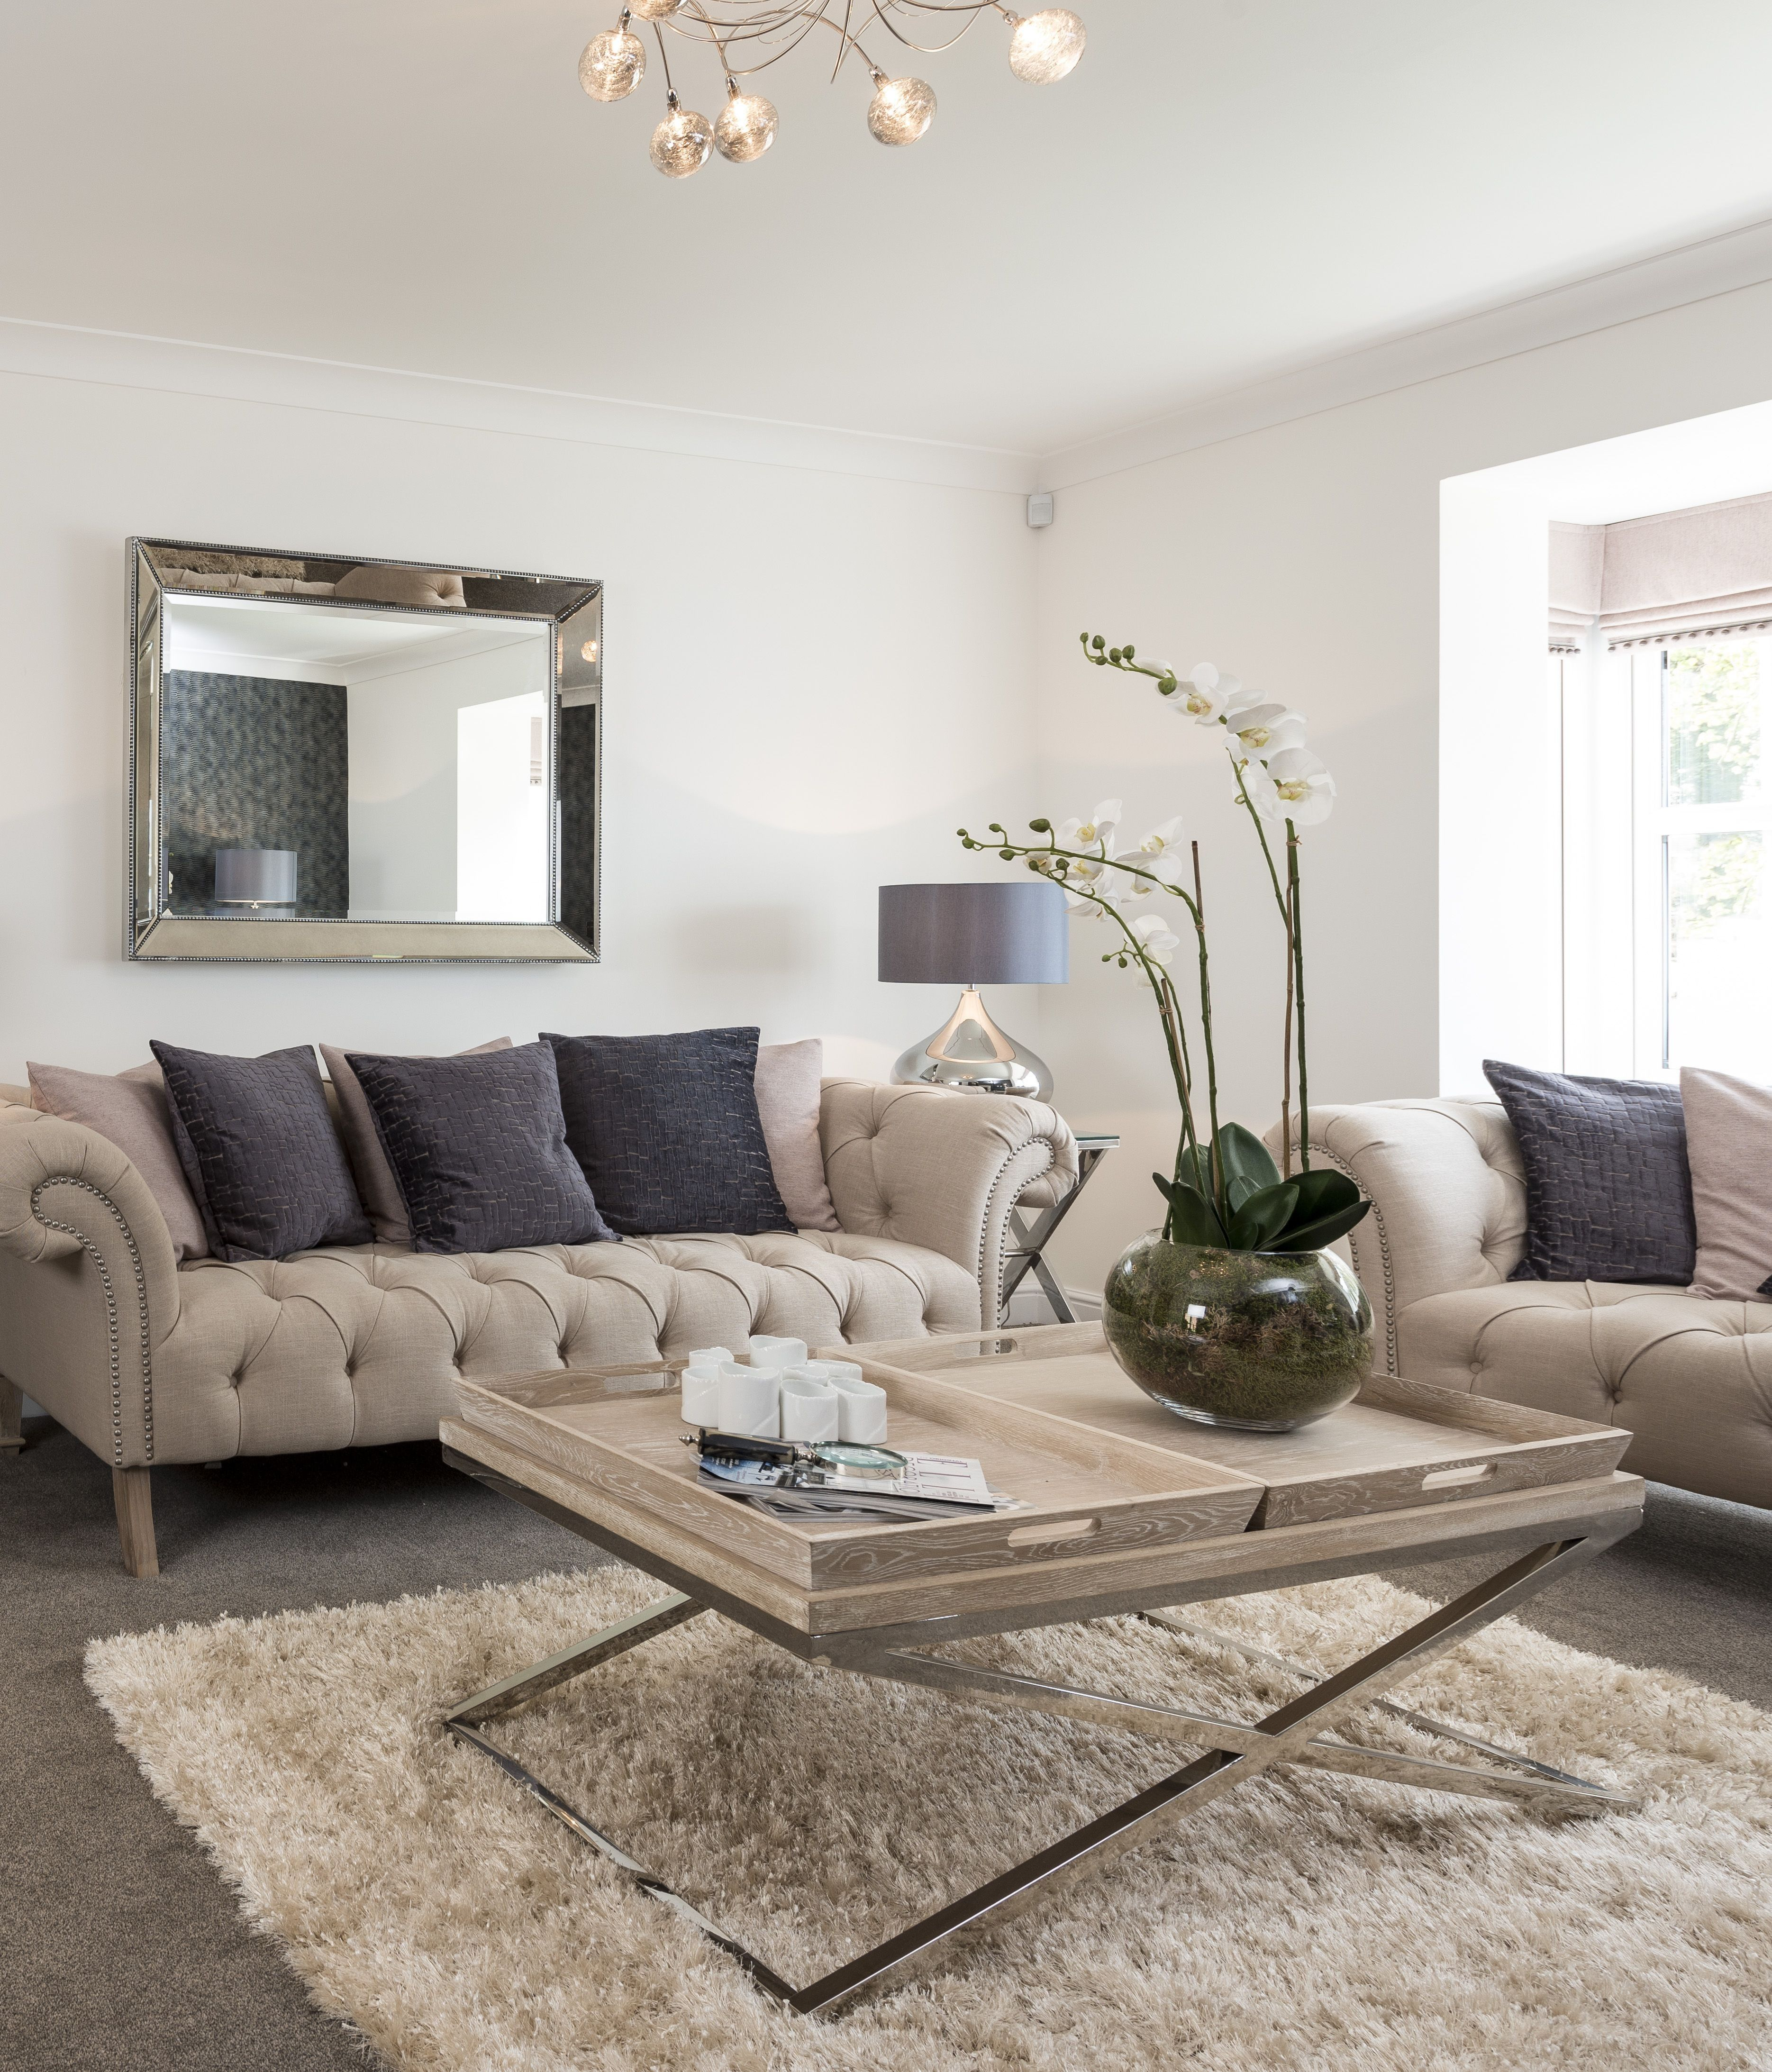 30 Great Image Of Beige Living Room Janicereyesphotography Com Grey Couch Living Room Grey Carpet Living Room Grey Sofa Living Room